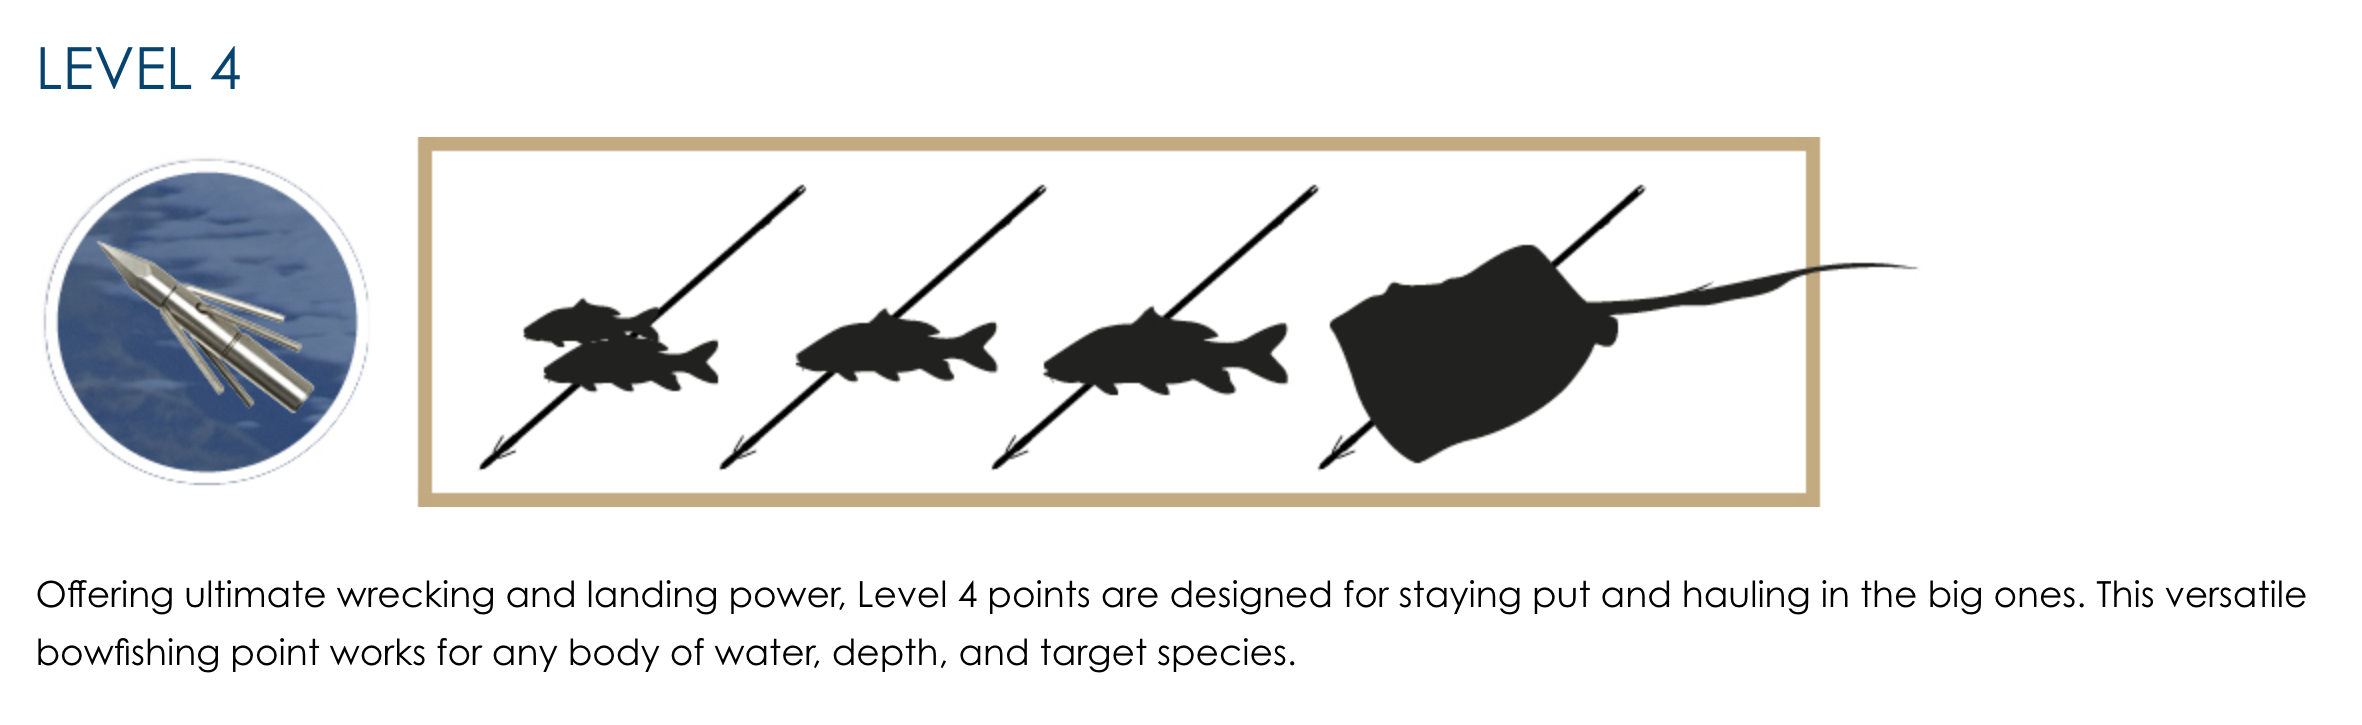 Fin-Finder Bowfishing Point - Level 4 Guide